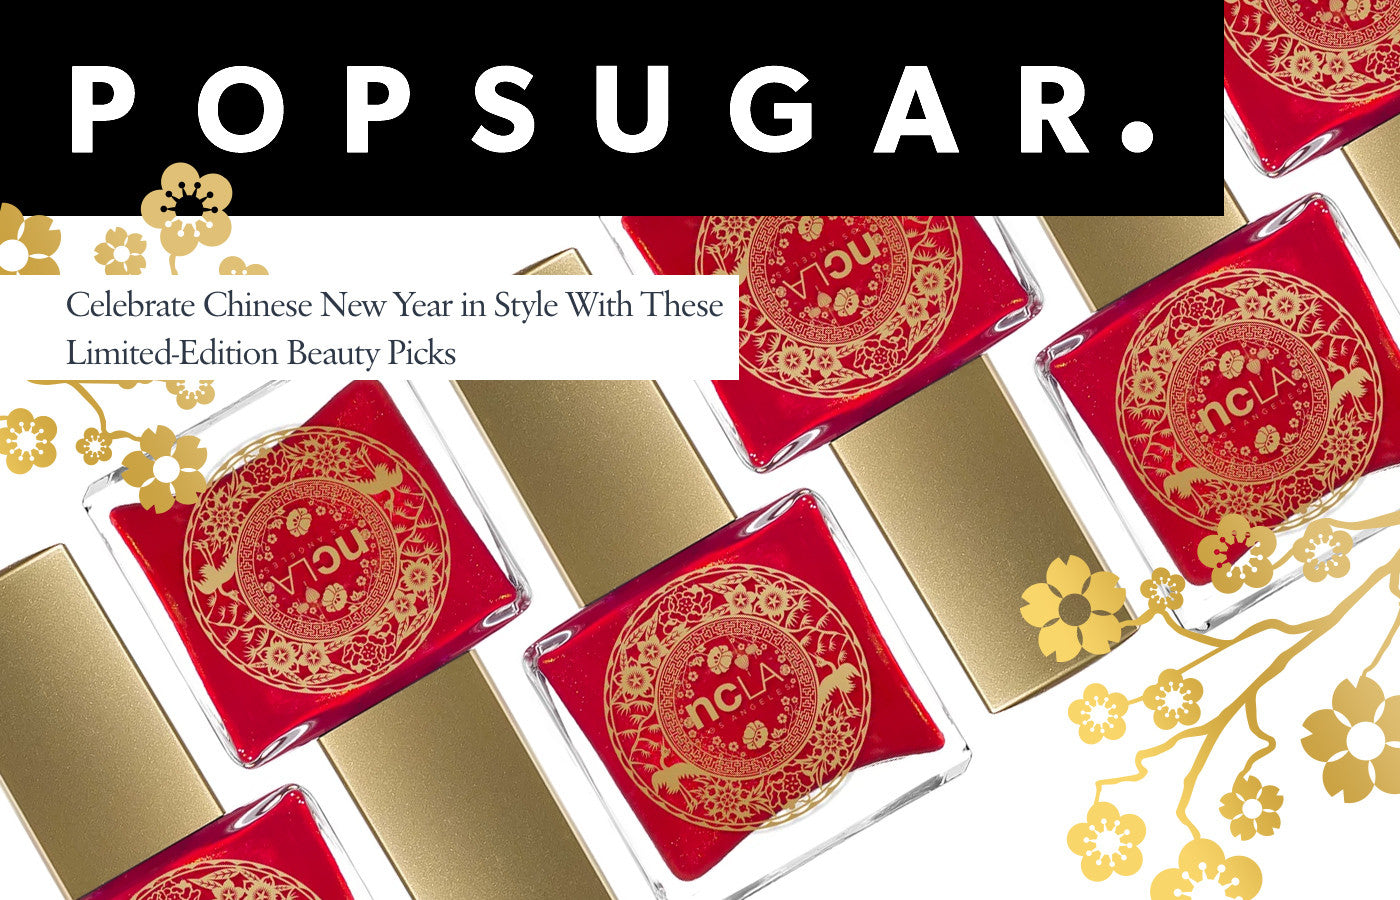 POPSUGAR: Celebrate Chinese New Year in Style With These Limited-Edition Beauty Picks